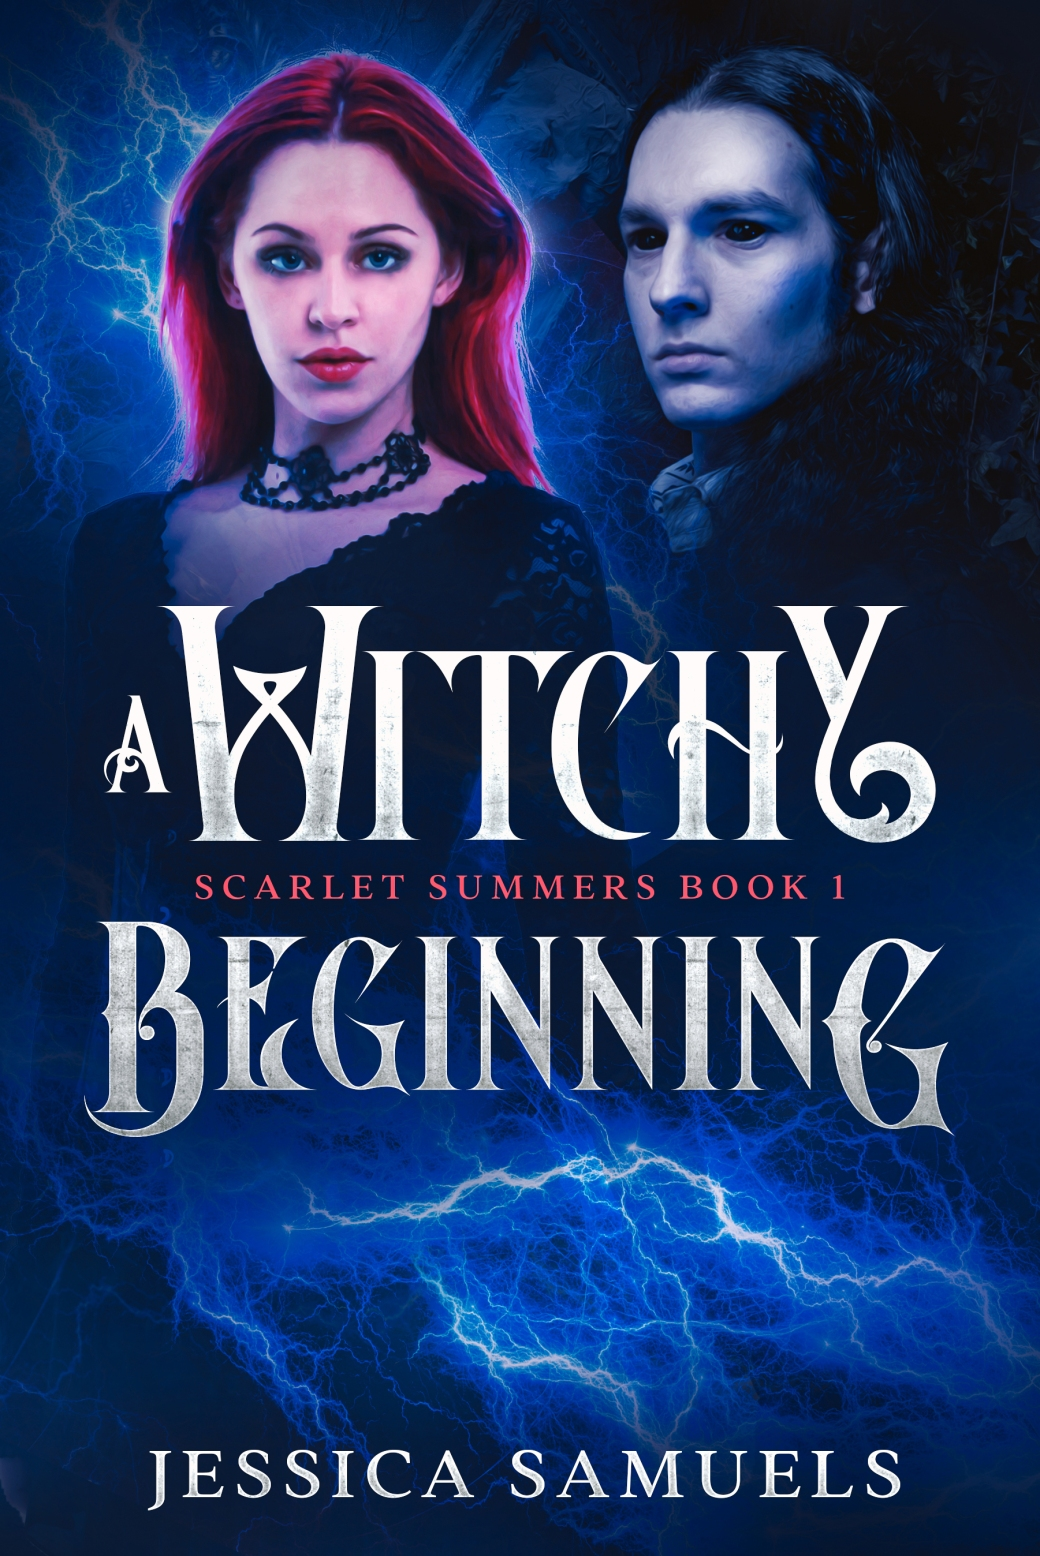 Scarlet book 1 cover